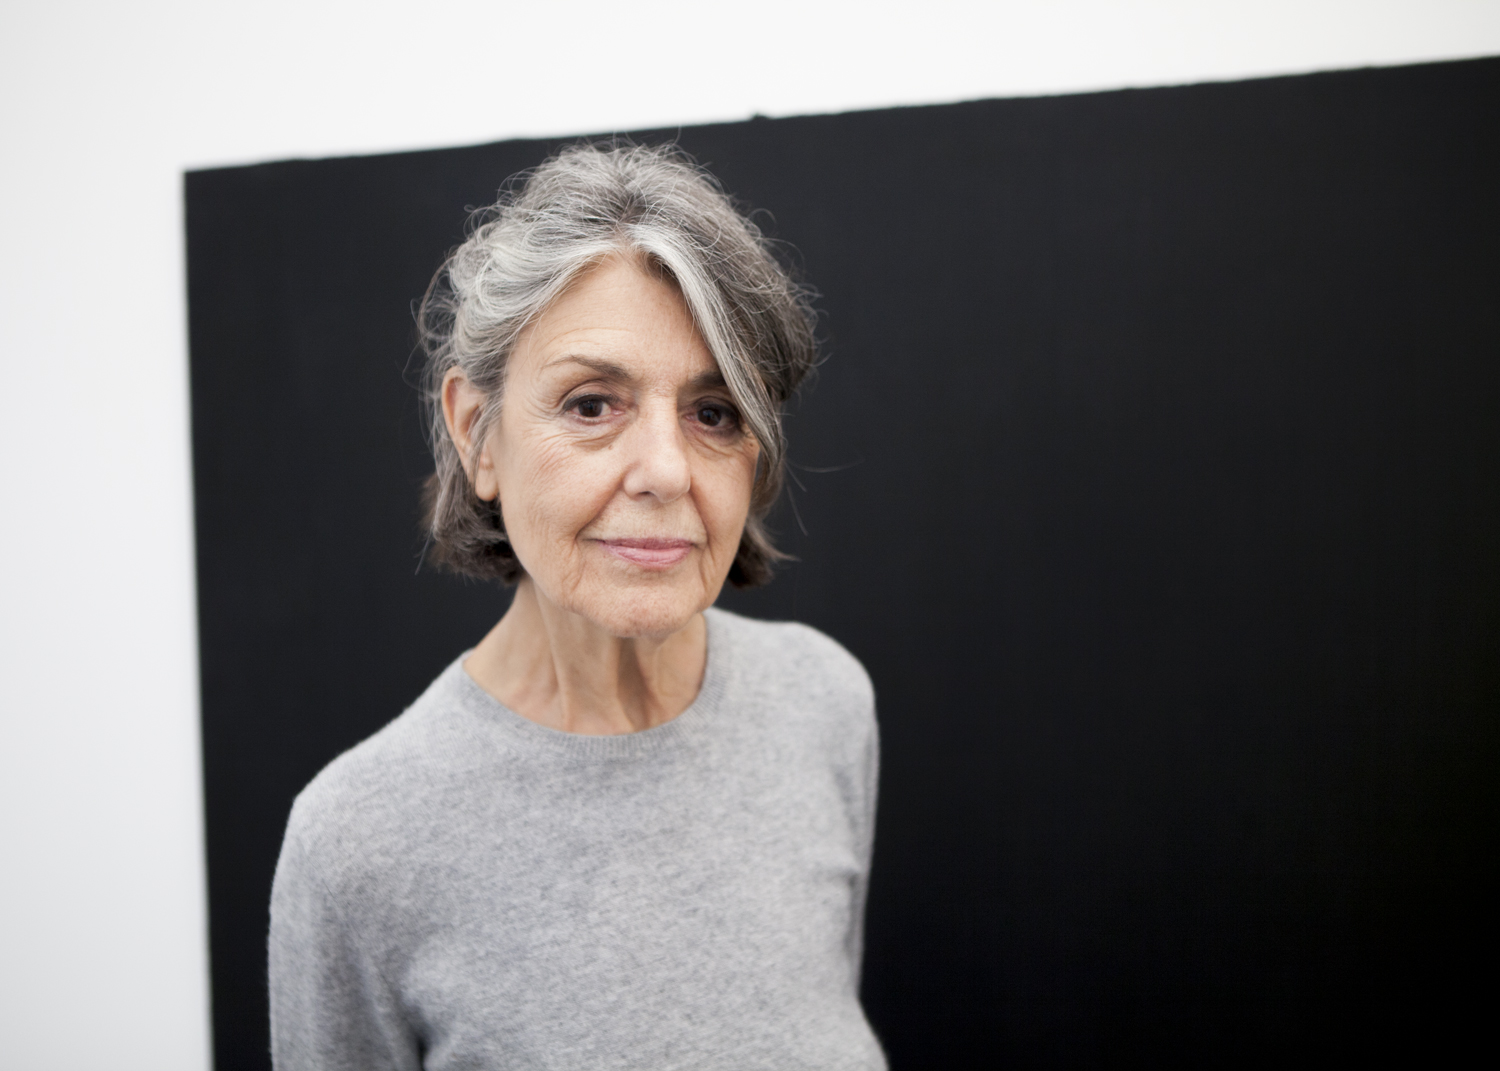 Paula Cooper of New York's Paula Cooper Gallery which opened in 1968